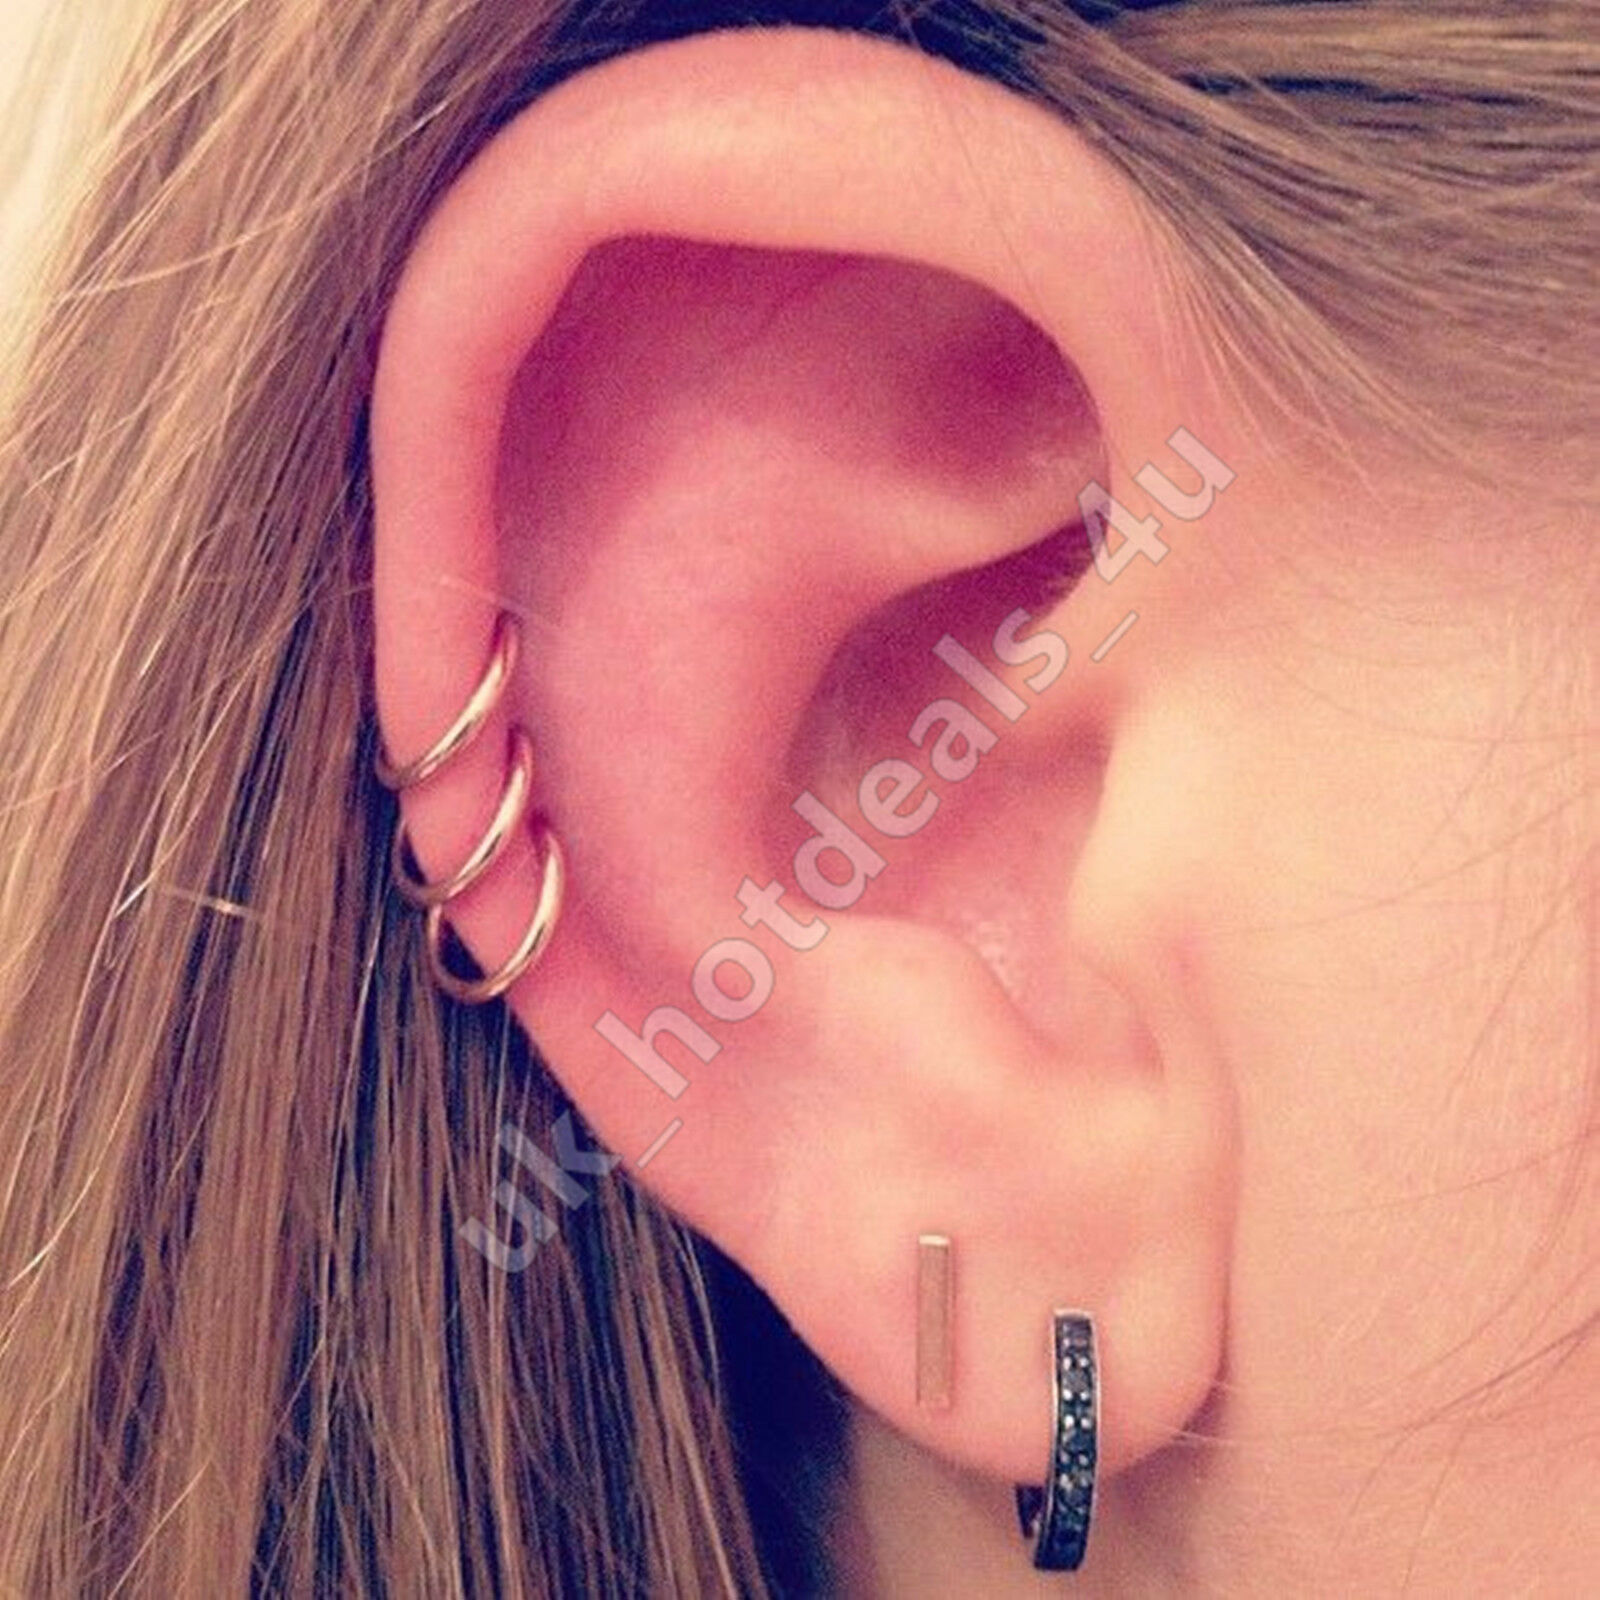 20g cartilage ring cuff tragus hoop 0 6m helix ring